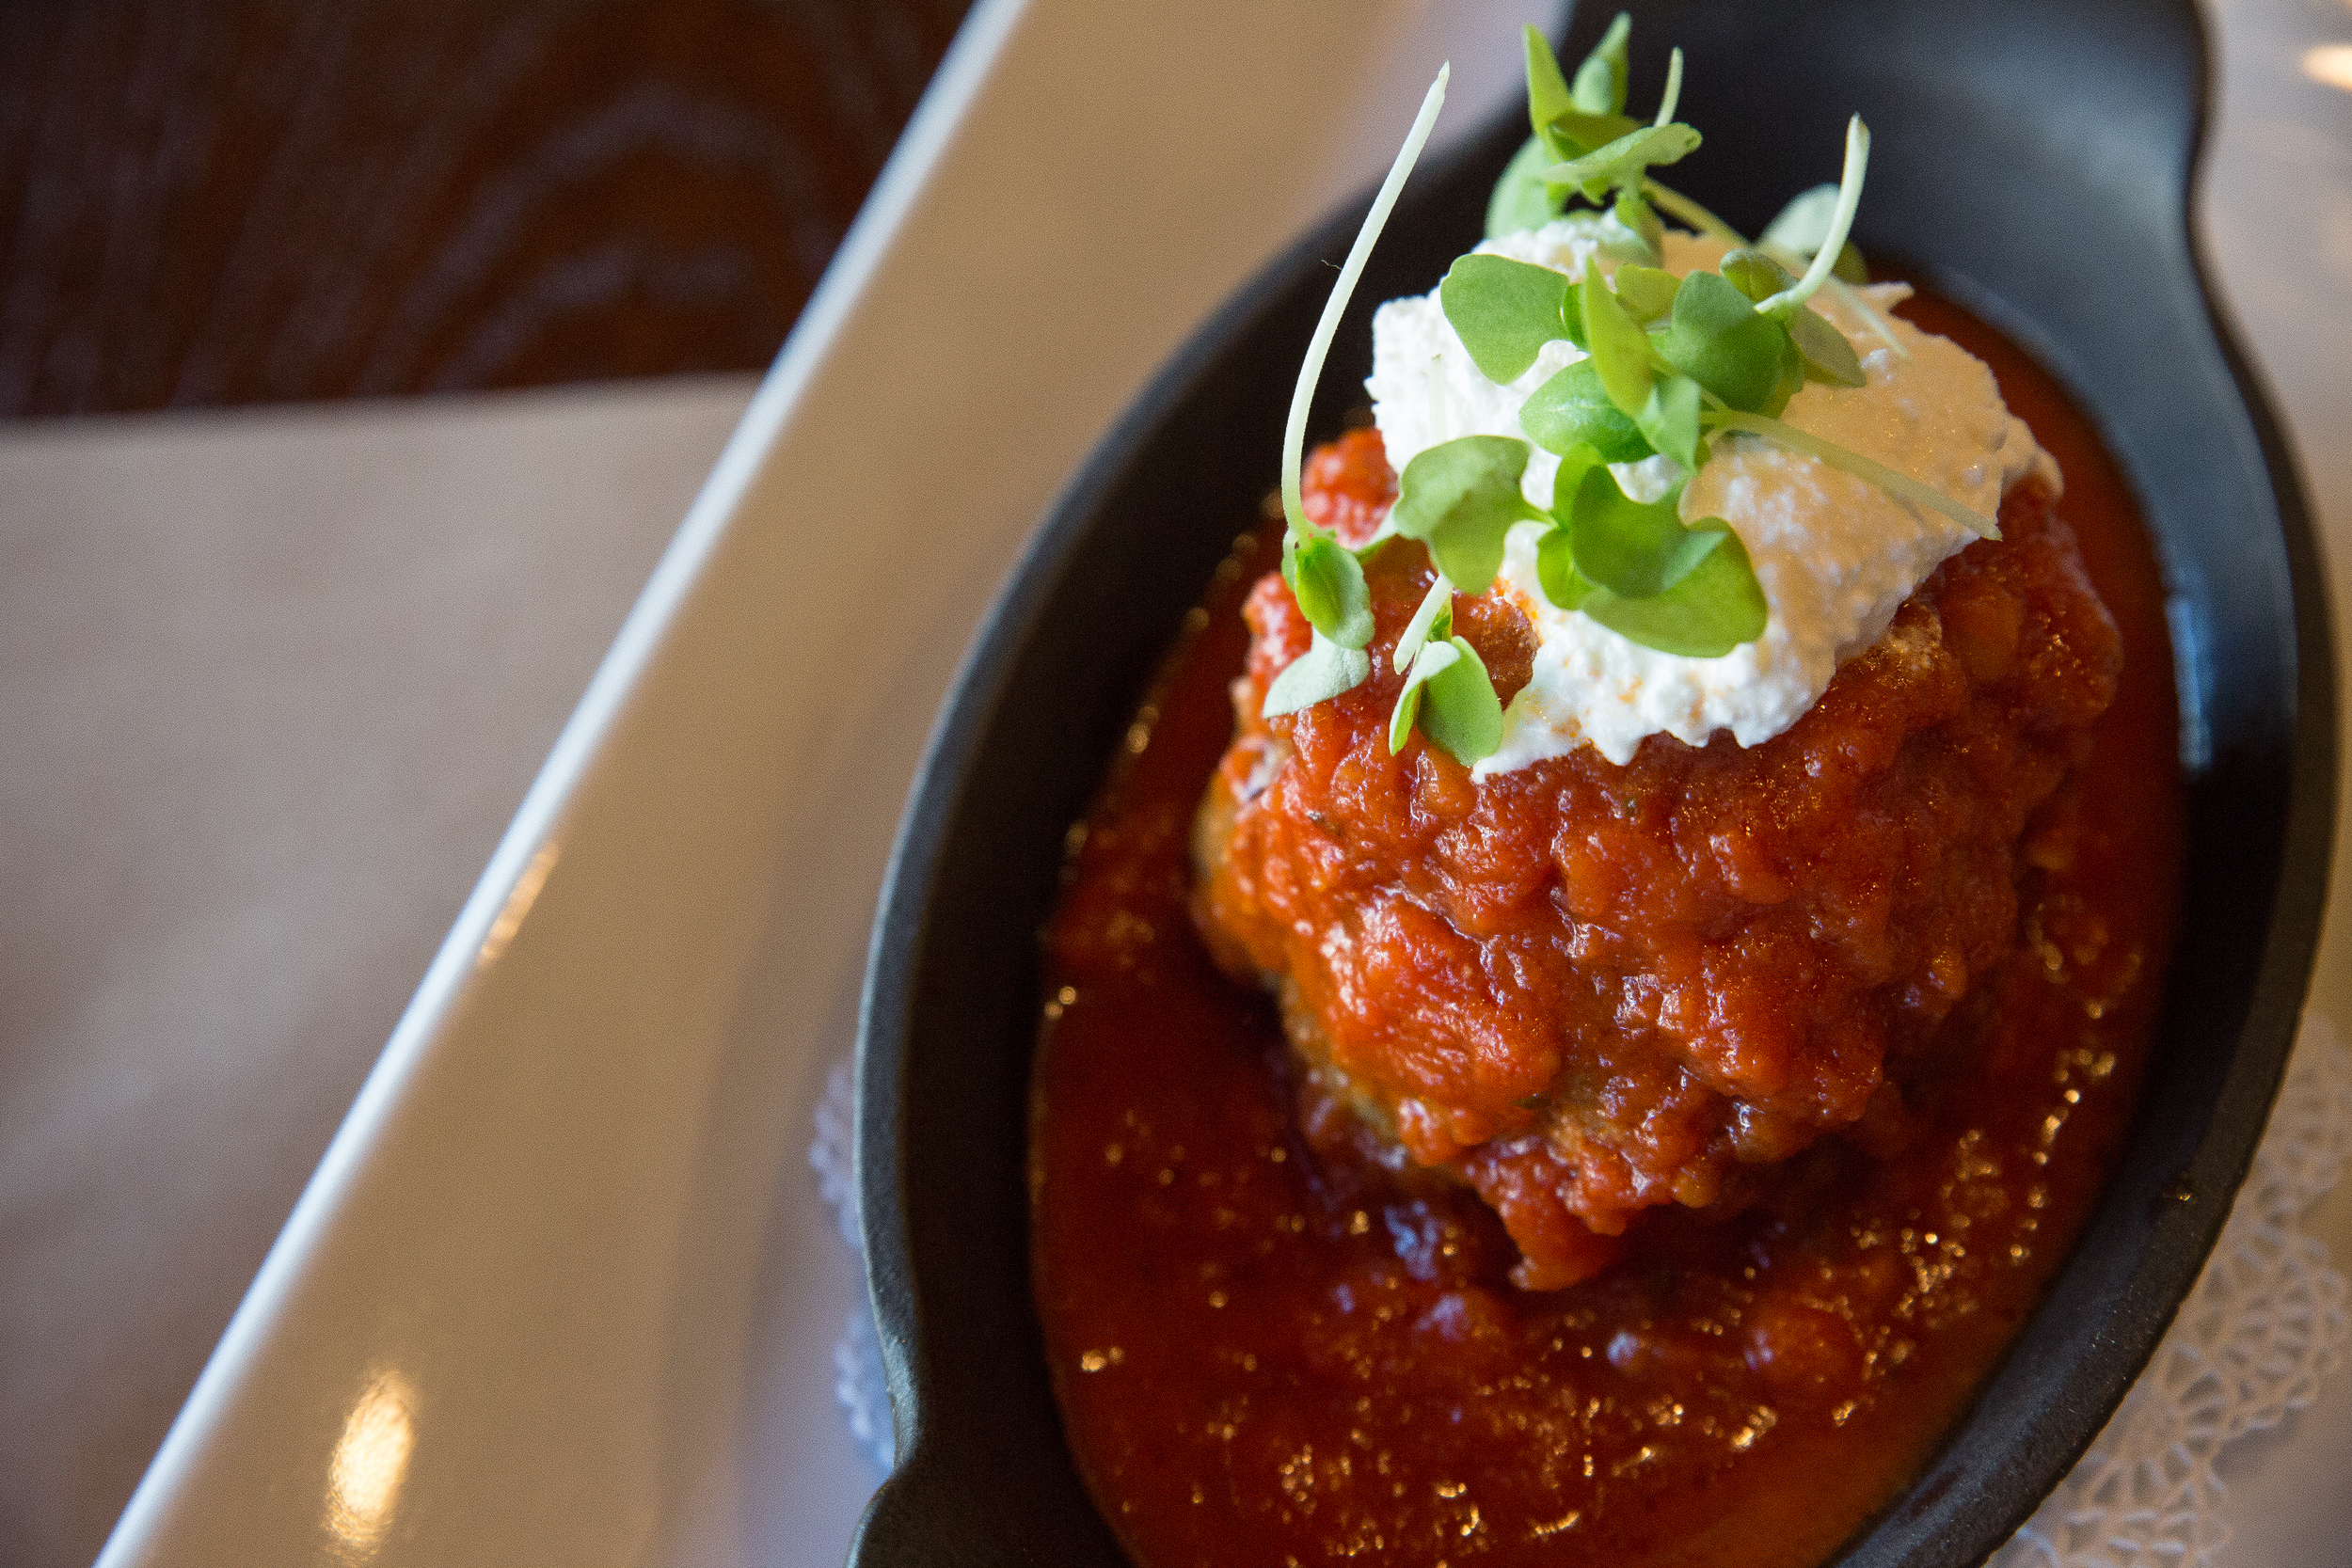 The Polpetta housemade meatball integrates hearty seasonings, topped with a creamy ricotta, is an appetizer that takes one back home.